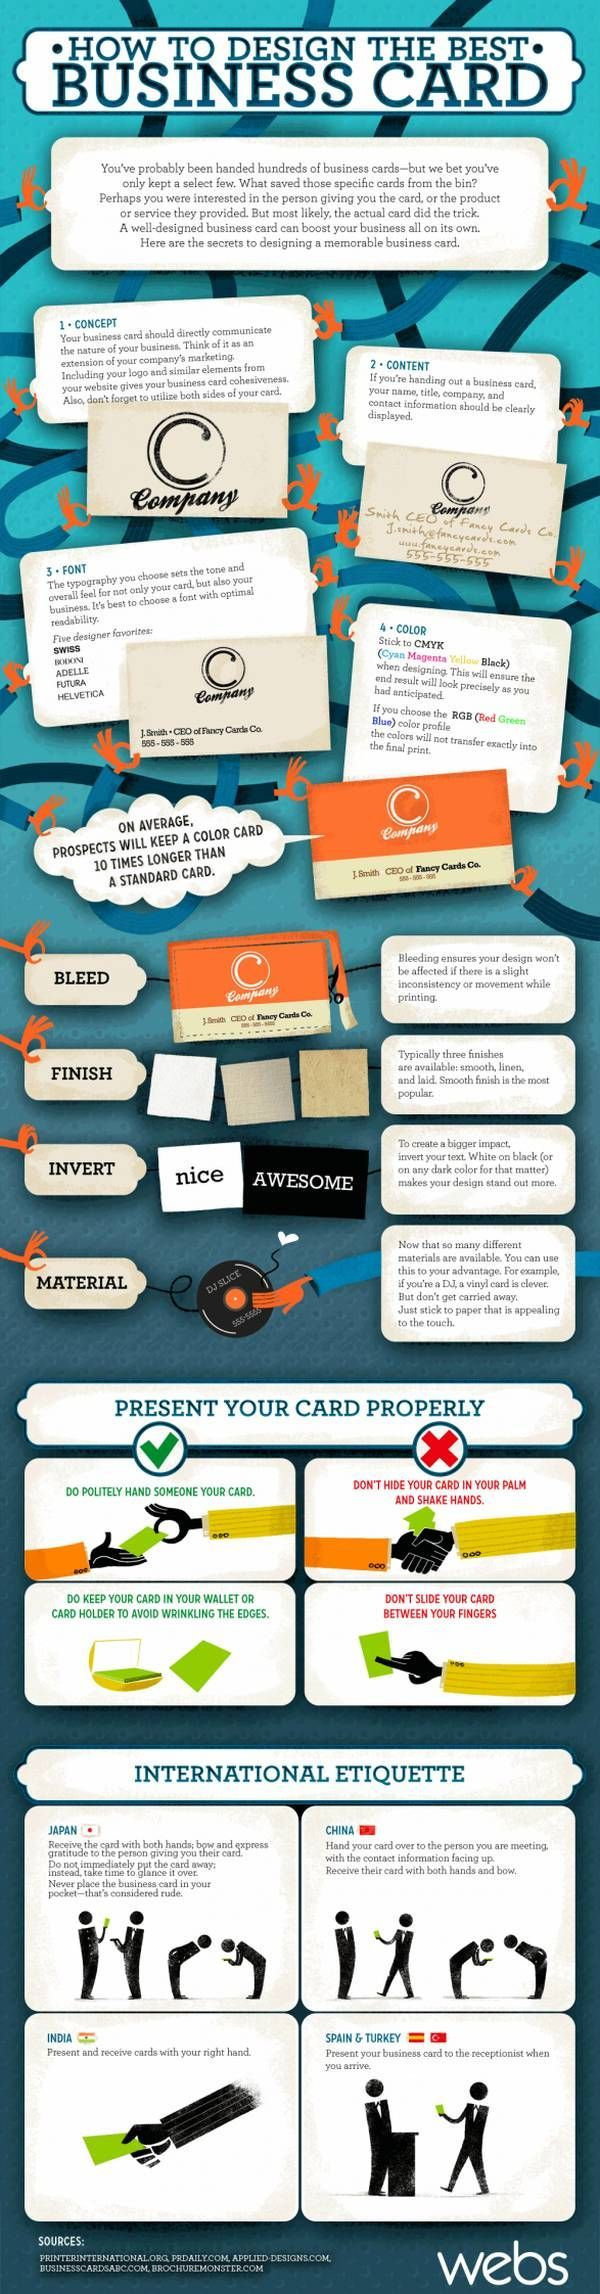 The 78 best Business Cards images on Pinterest | Business card ...